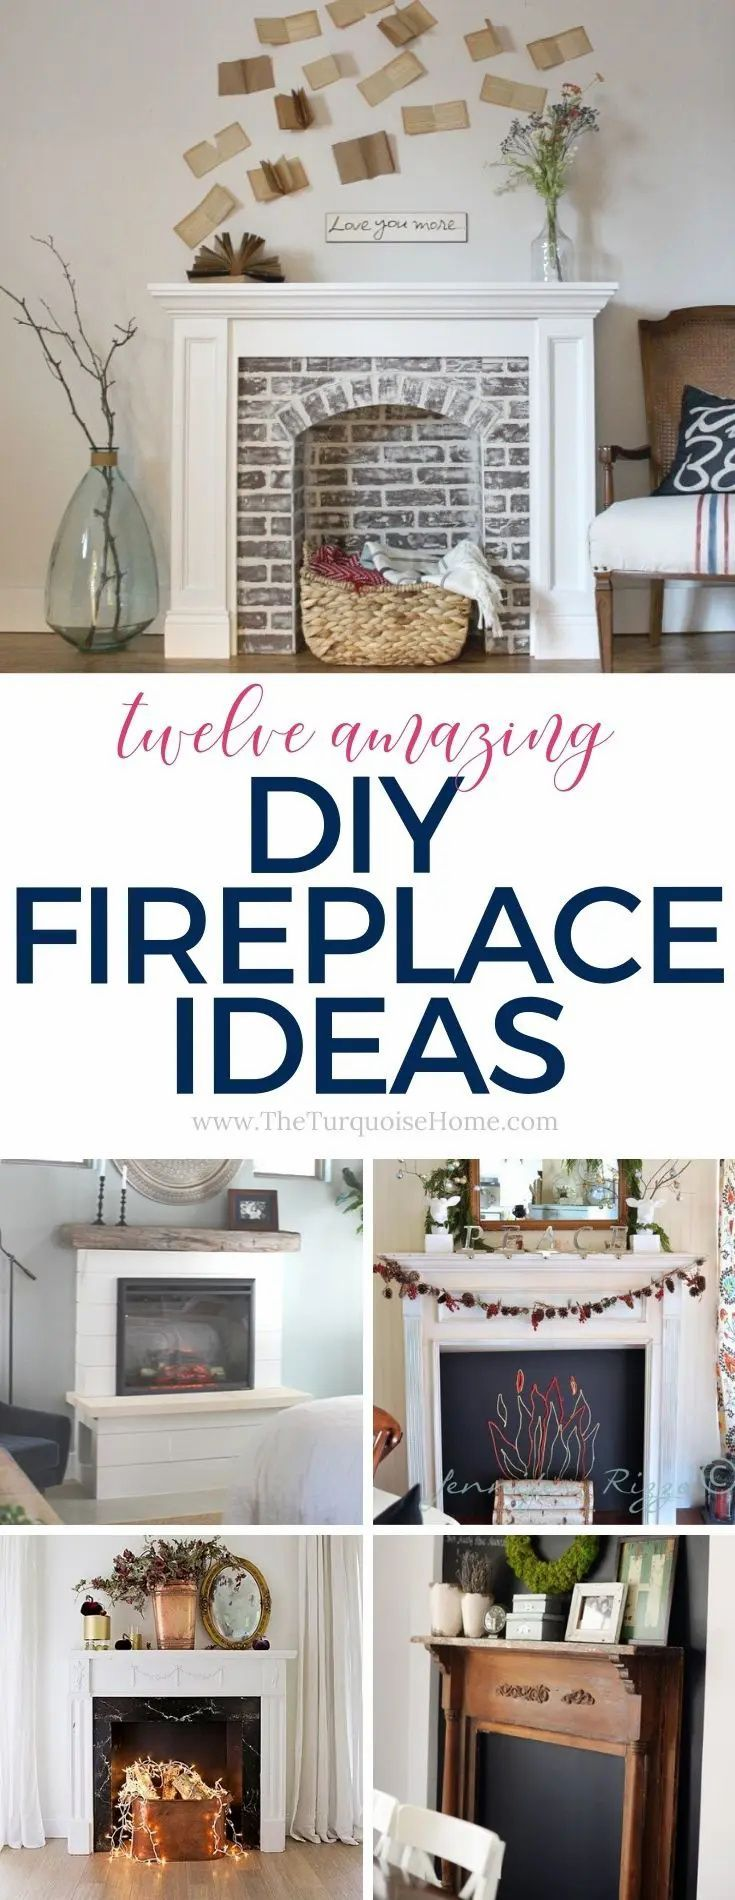 12 DIY Faux Fireplace Ideas The Turquoise Home